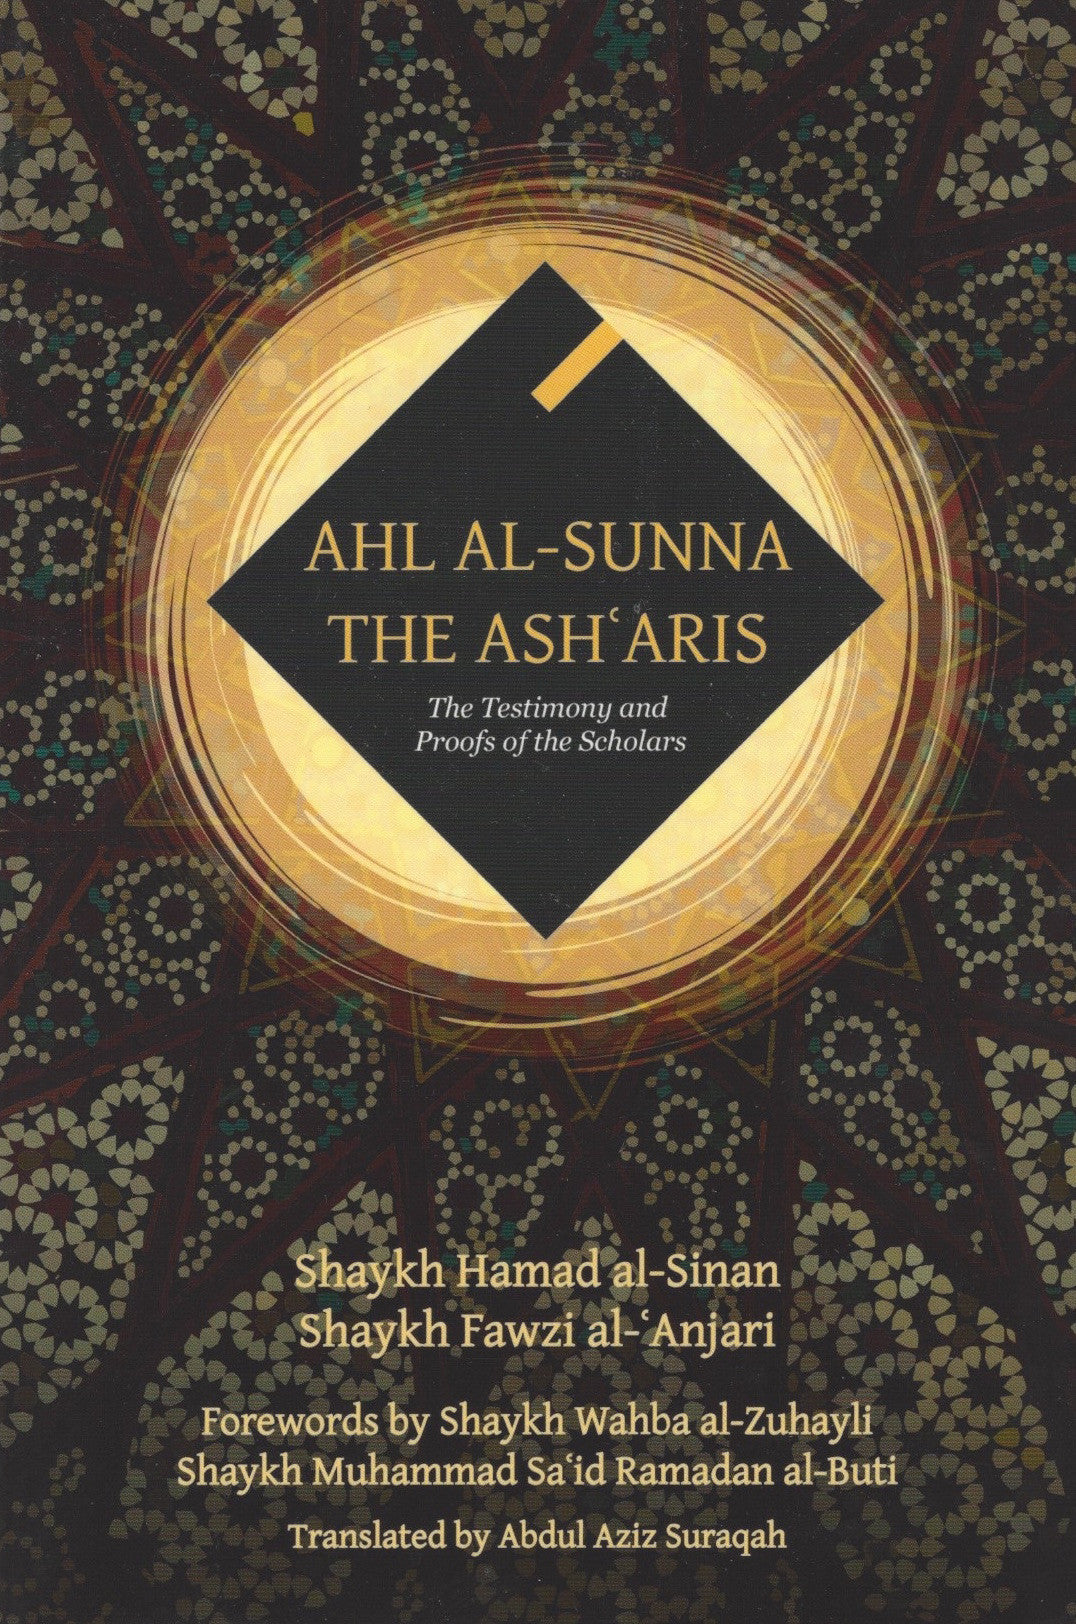 Ahl Al-Sunna The Asharis: The Testimony and Proofs of the Scholars , Book - Daybreak Press Global Bookshop, Daybreak Press Global Bookshop